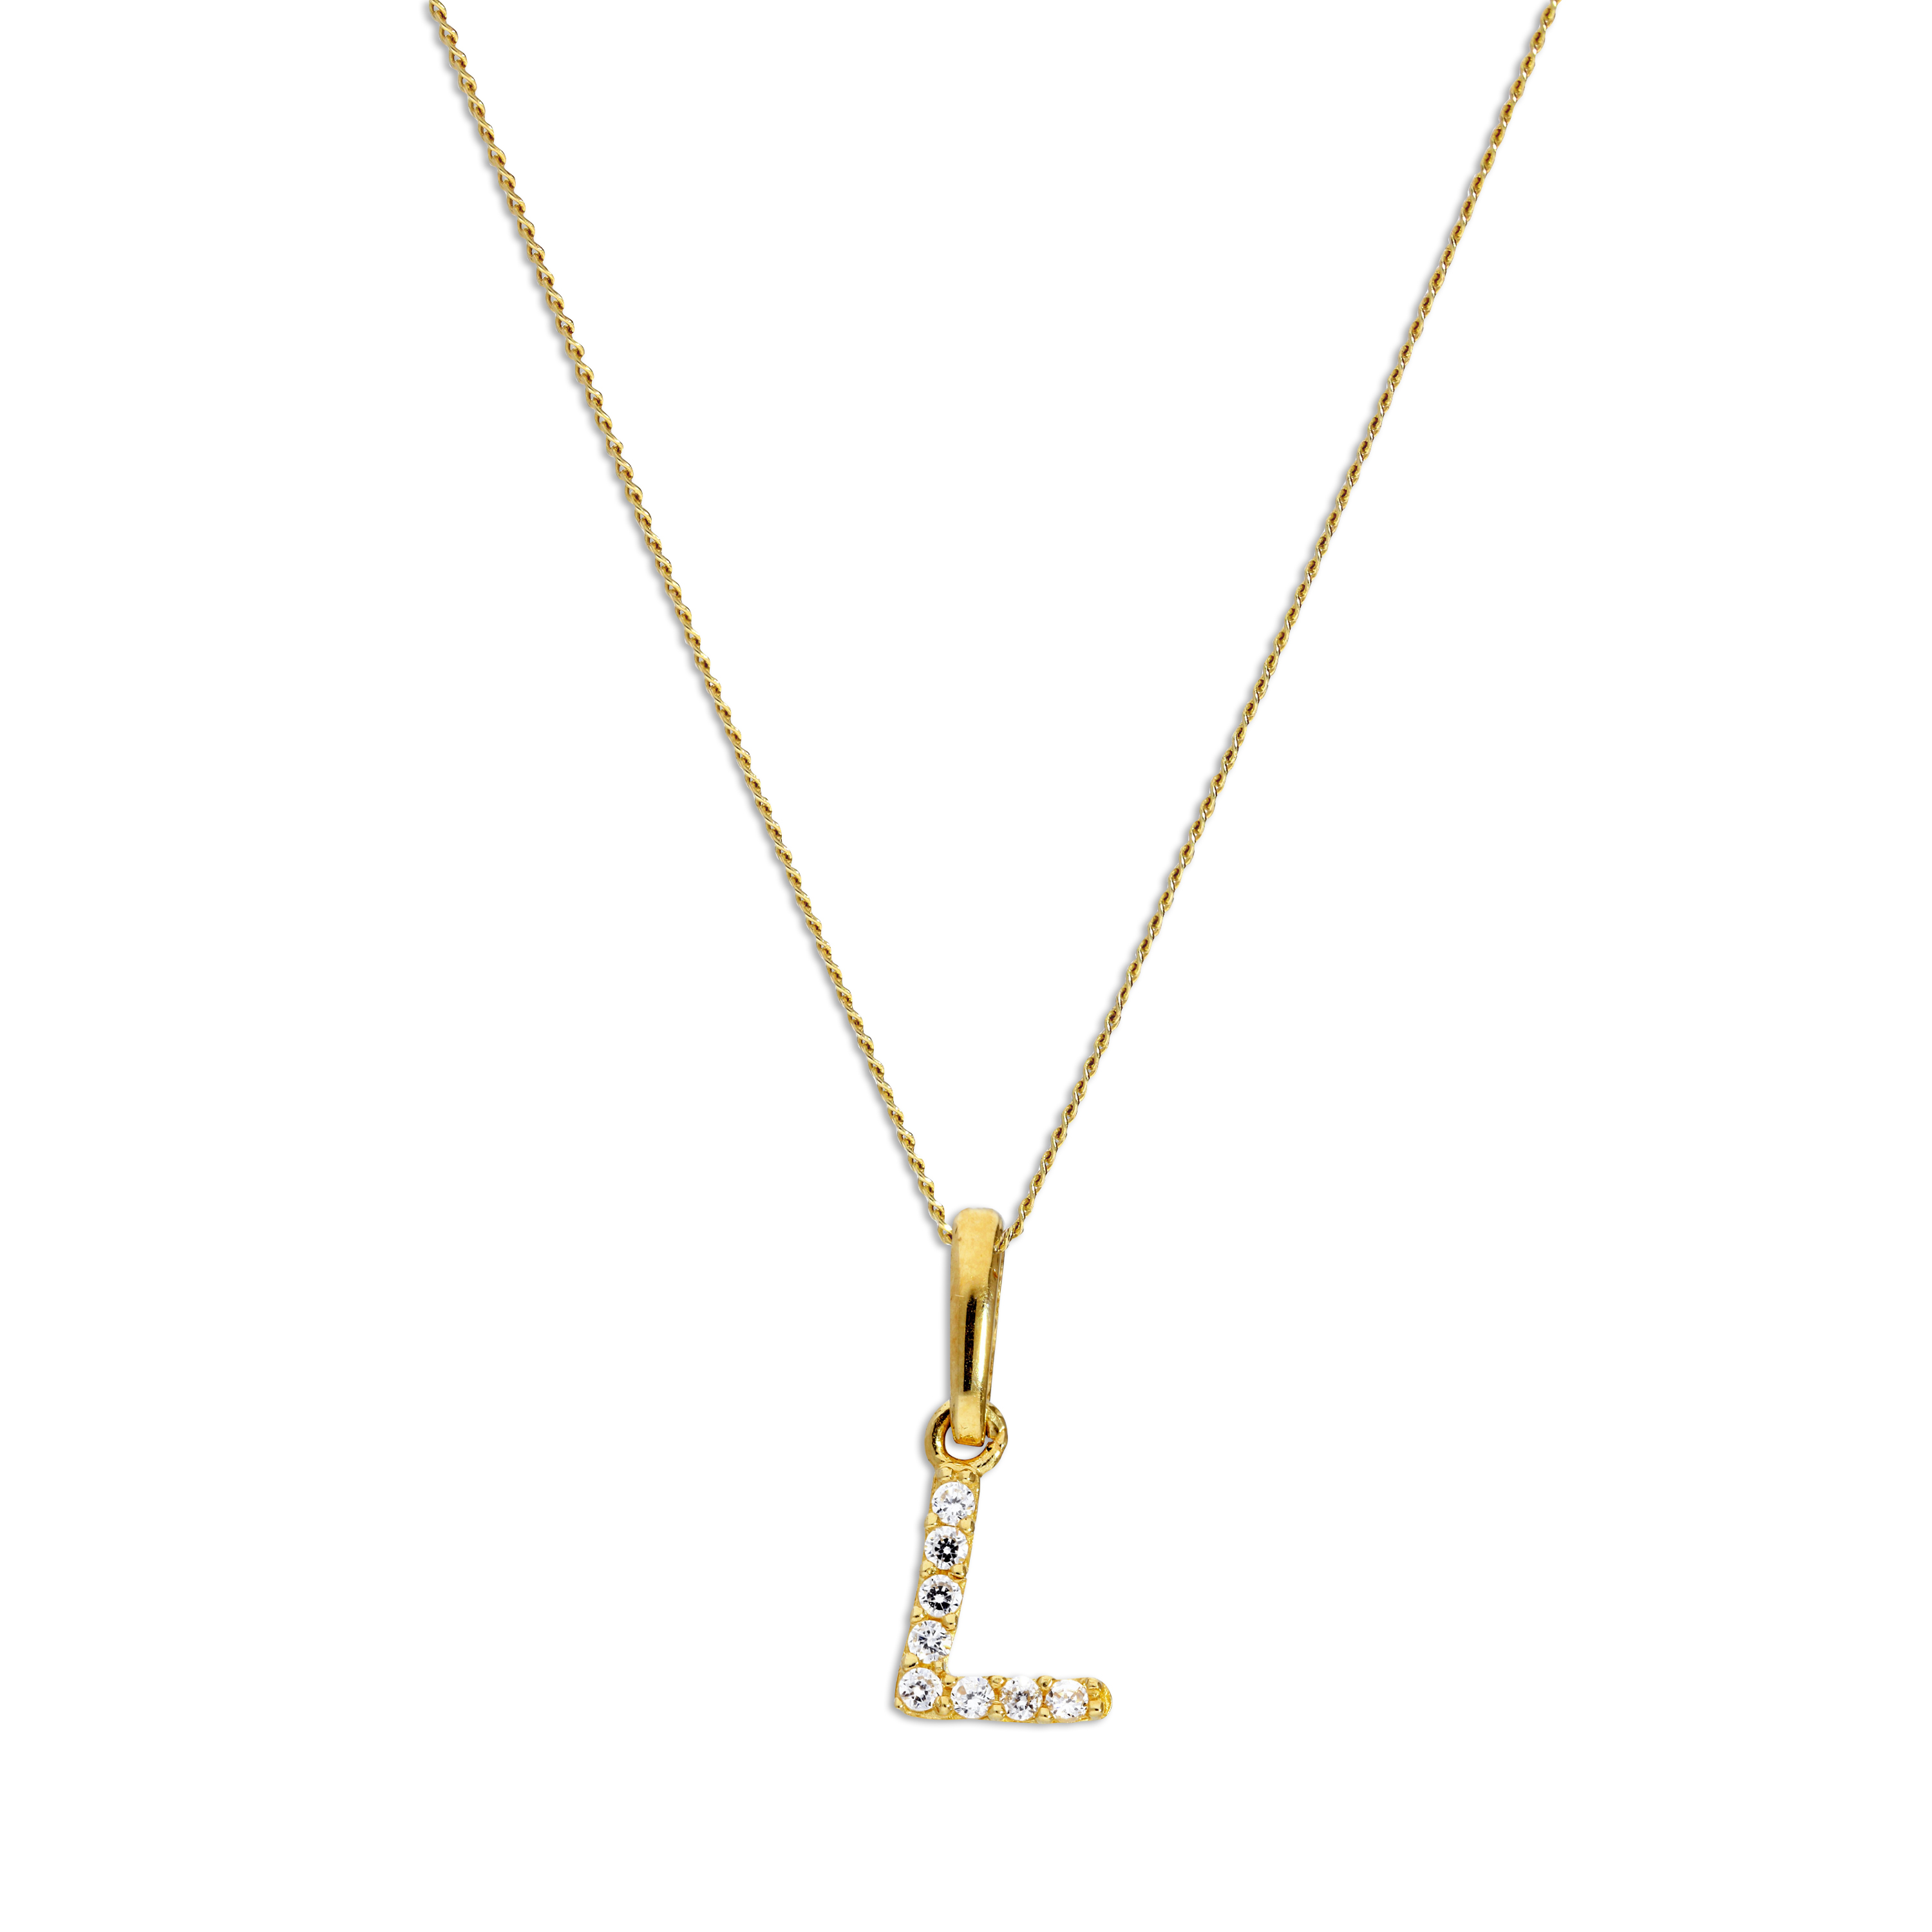 An image of 9ct Gold Clear CZ Crystal Script Alphabet Letter L Necklace 20 Inches Chain